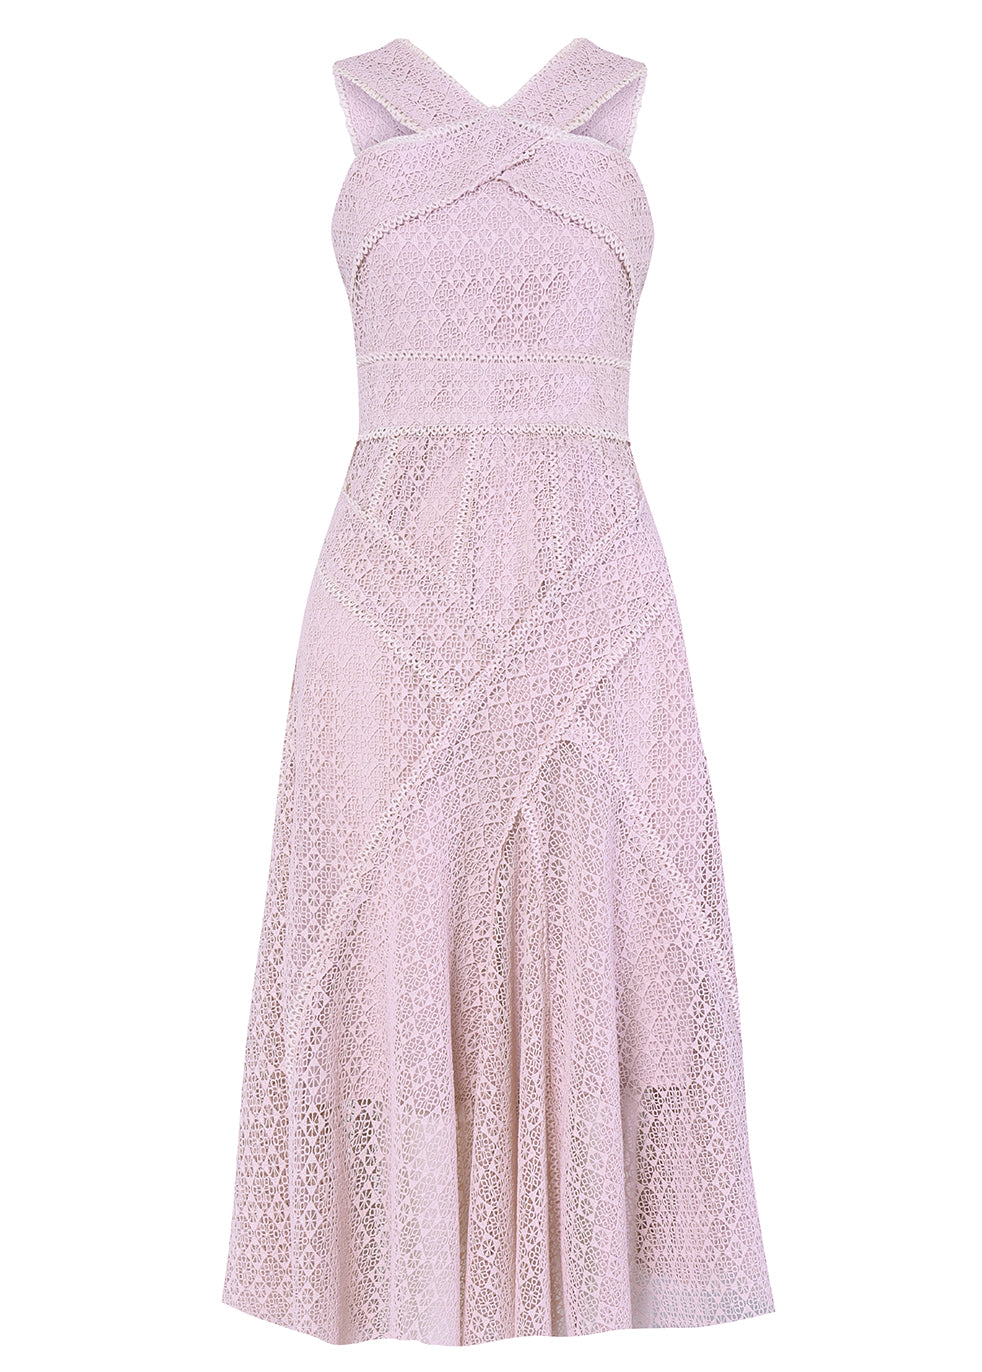 Pinky Lilac Cross Body Crochet Midi Dress